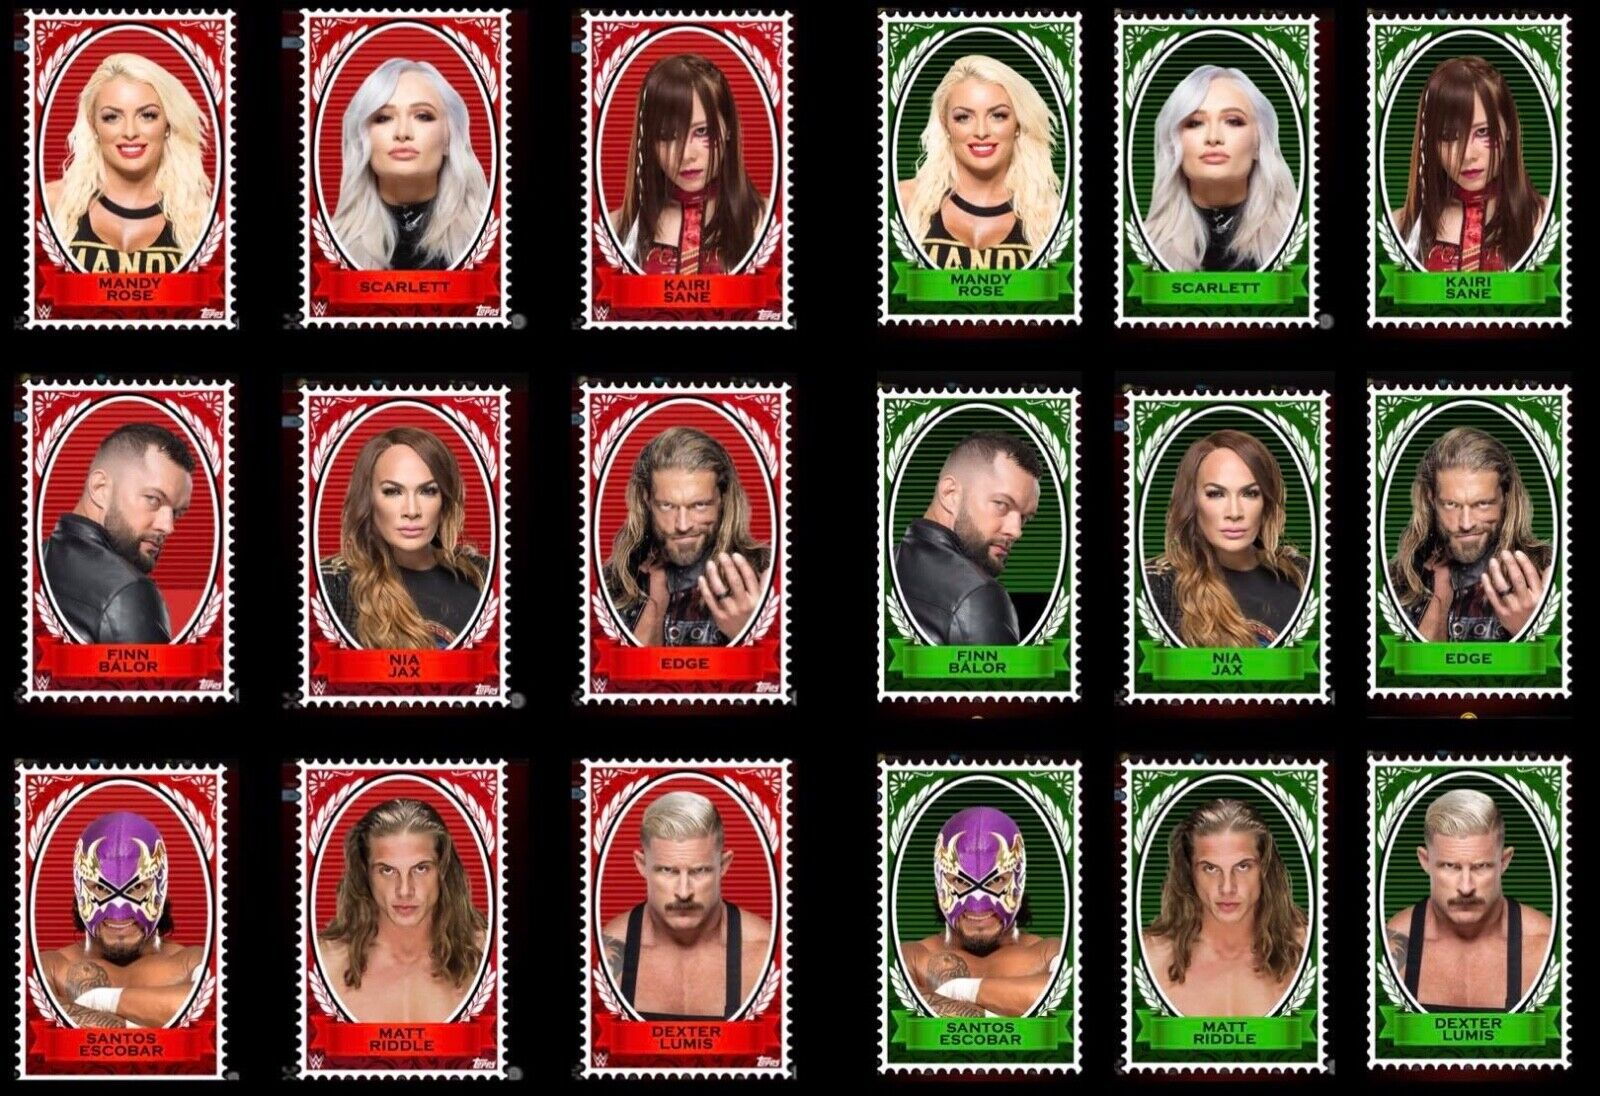 STAMPS Wave 3 RED & GREEN DIE-CUTS 18 CARD SET Topps WWE SLAM DIGITAL TRADER